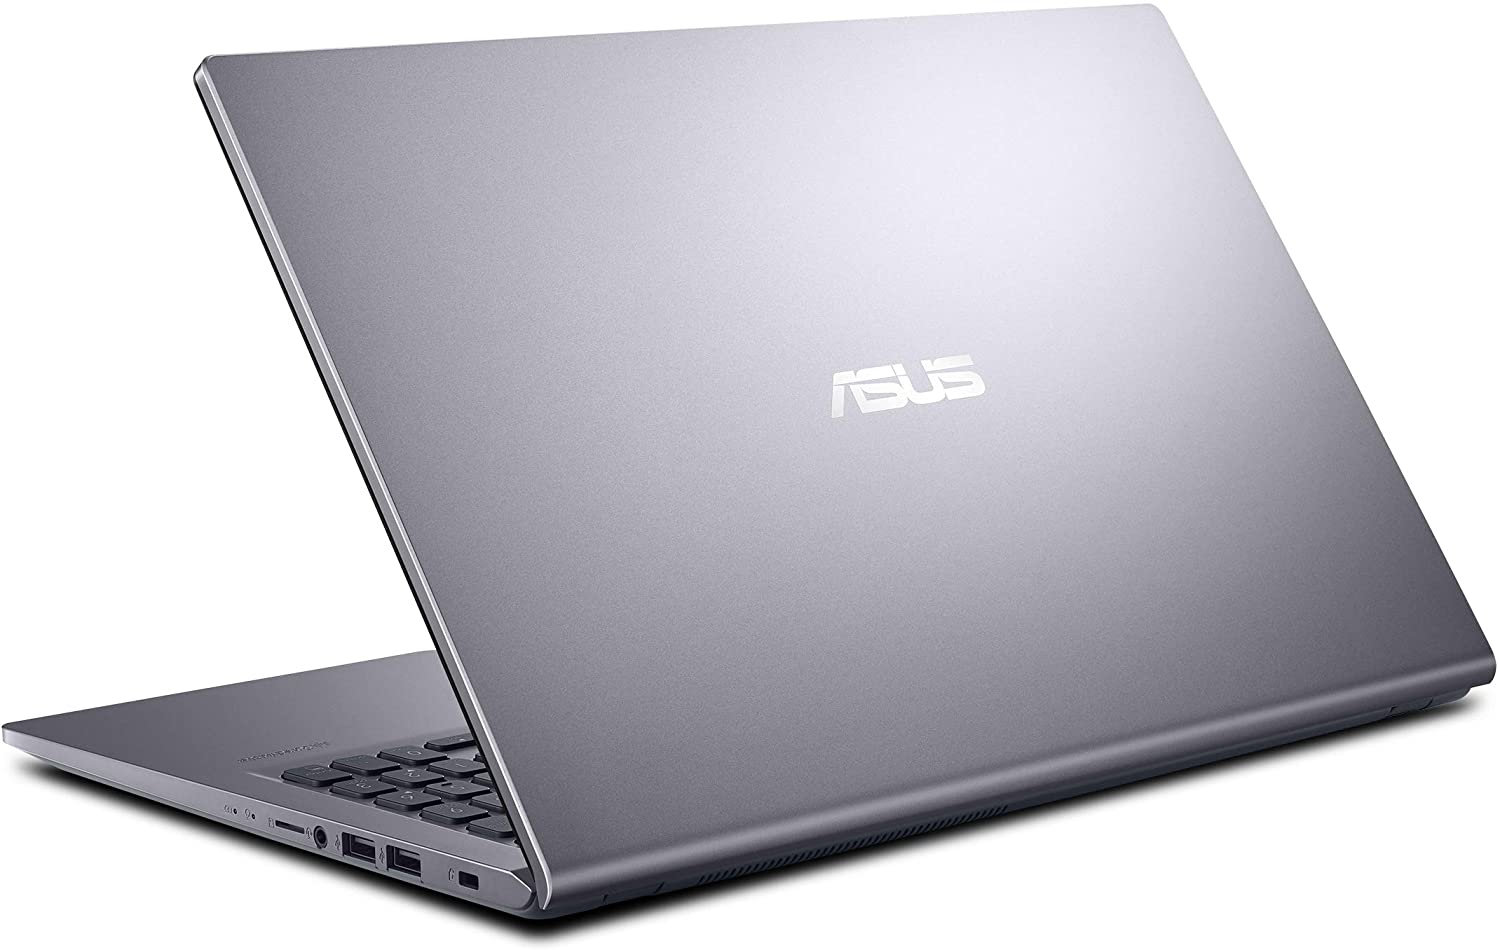 "ASUS VivoBook Thin & Light Laptop - 15.6"" FHD Display 